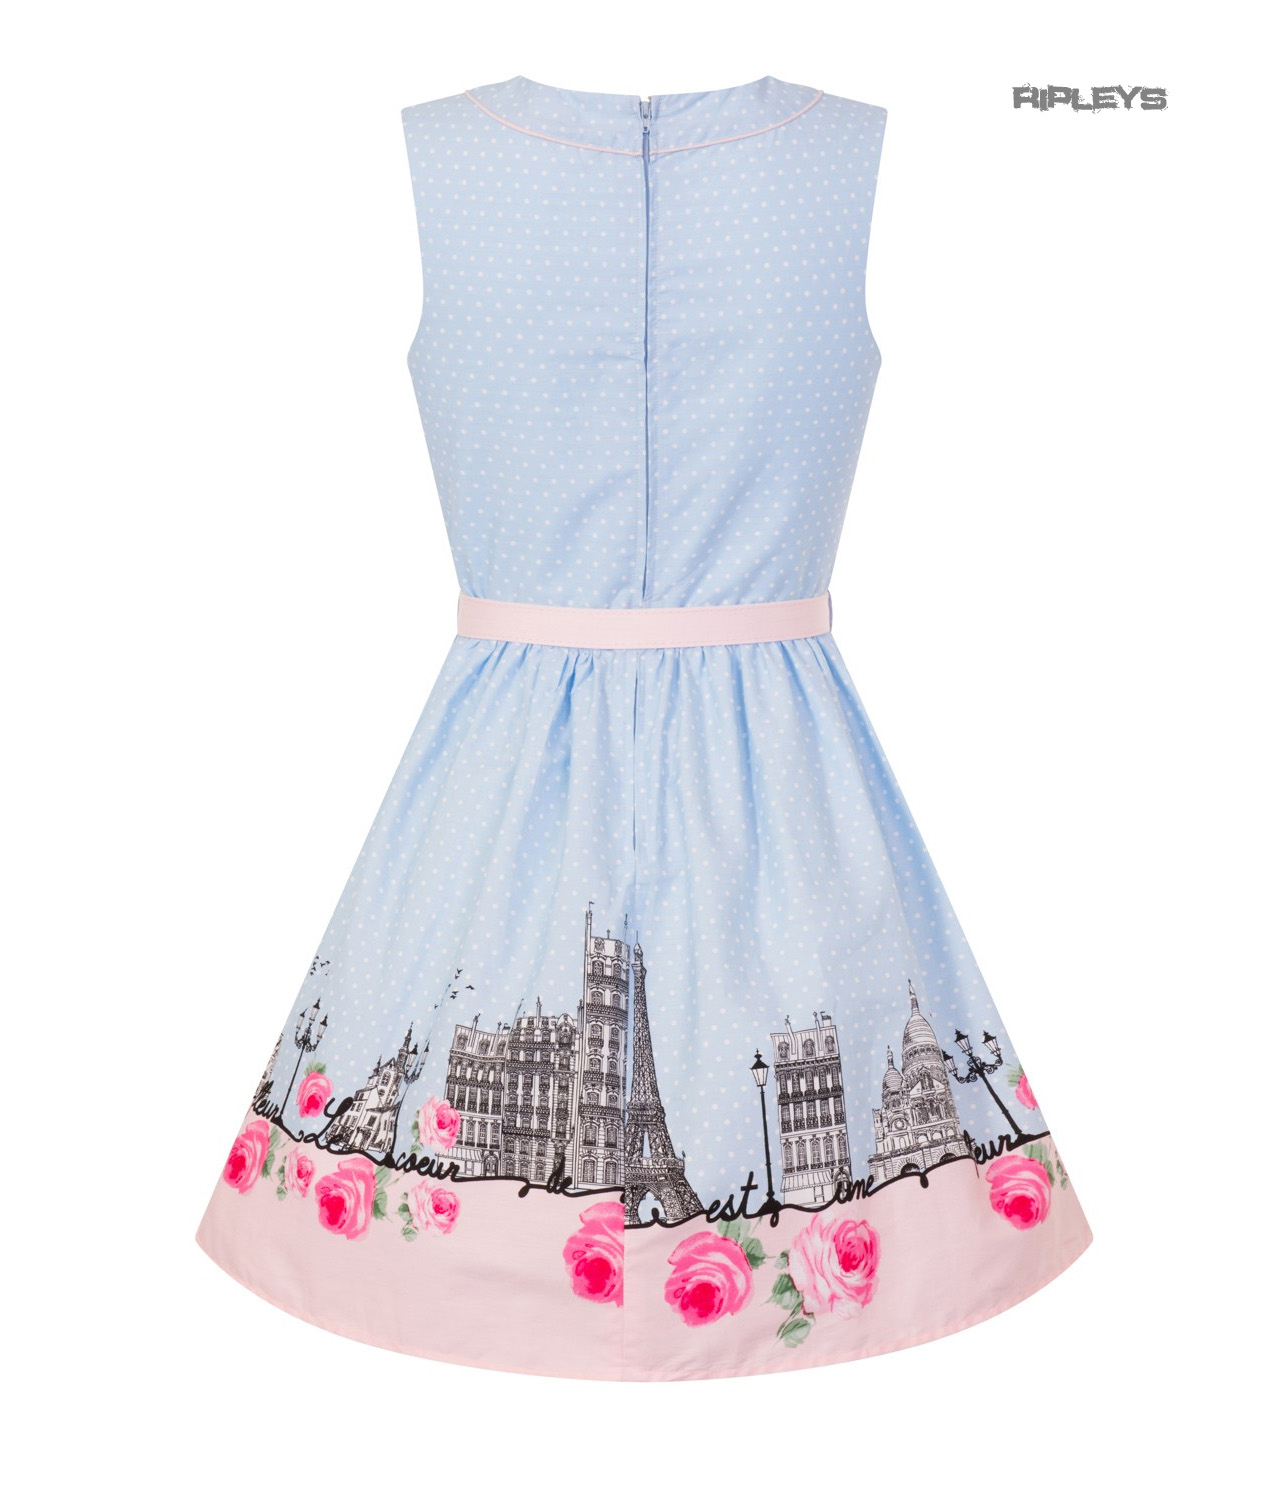 Hell-Bunny-50s-Vintage-Blue-Polka-Dot-PANAME-Mini-Dress-Paris-All-Sizes thumbnail 12